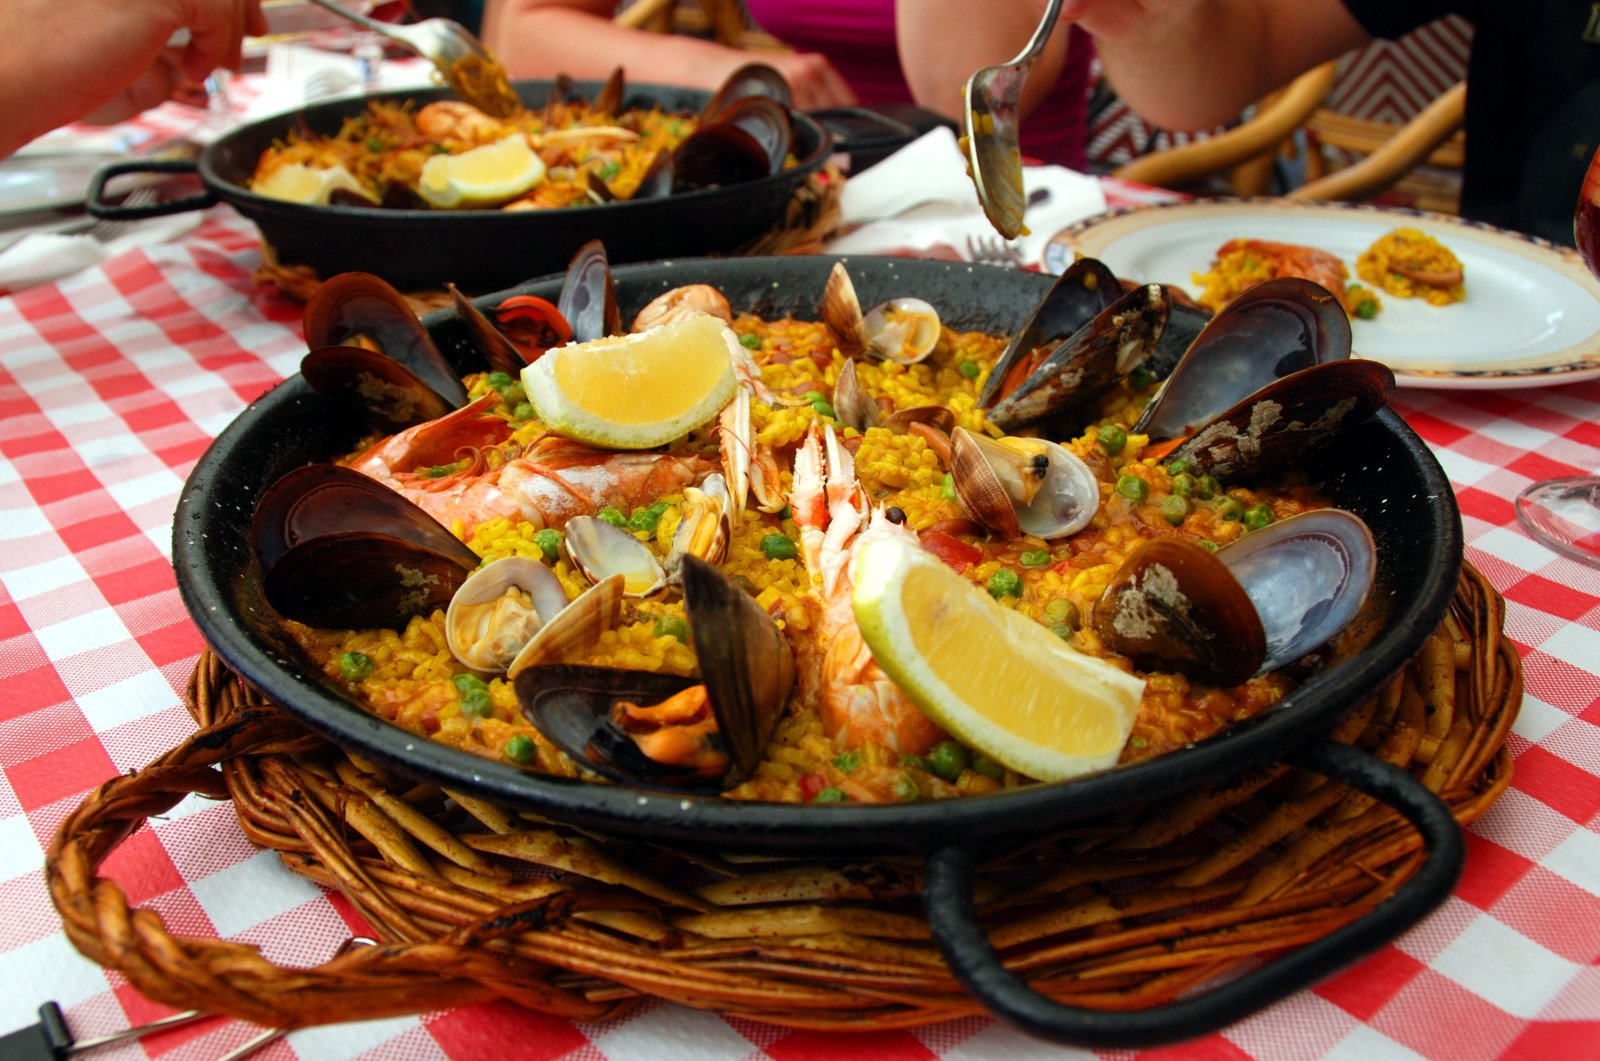 Spanish paella containing mussels with other seafood served in a pan. (iStock photo)